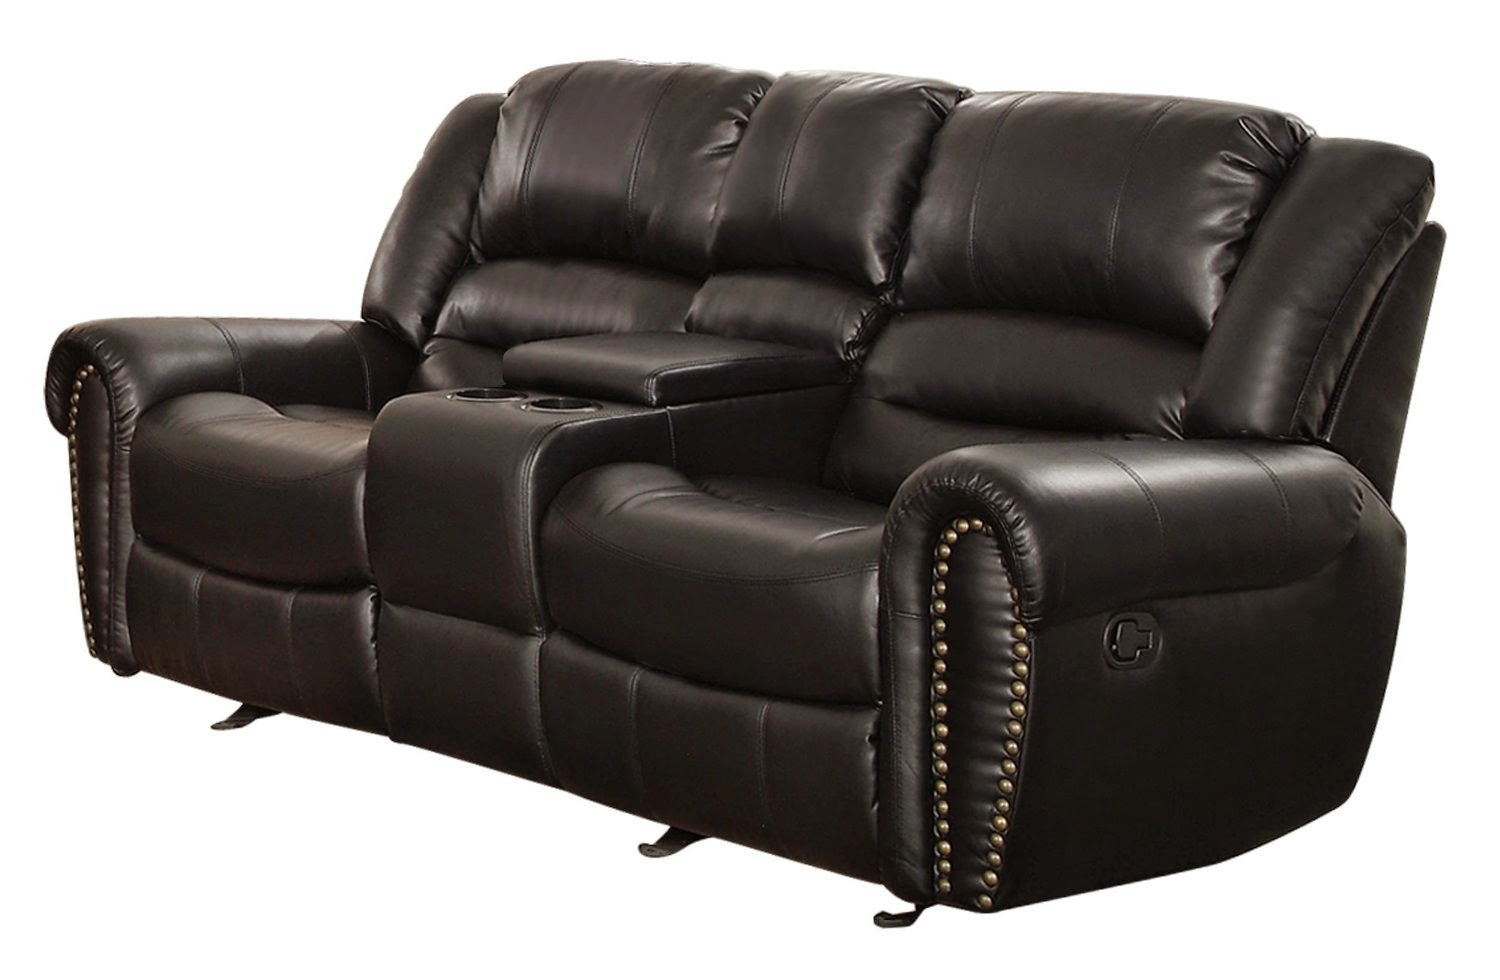 Reclining sofa loveseat and chair sets march 2015 Loveseats with console